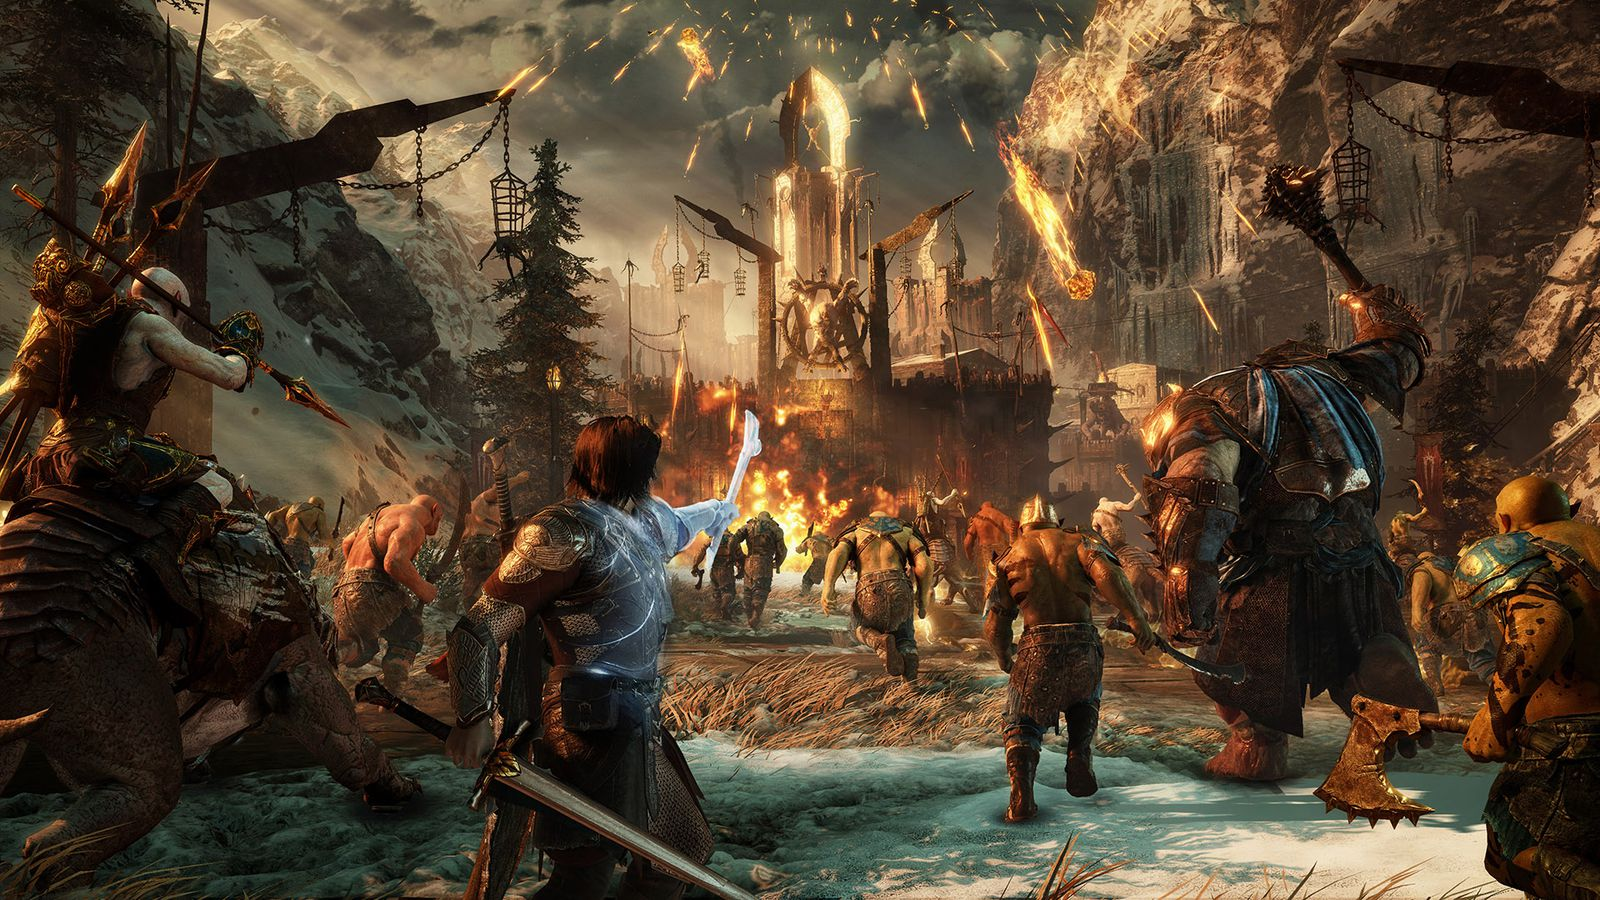 Middle-Earth: Shadow of War builds on the best part of Shadow of Mordor: the stories